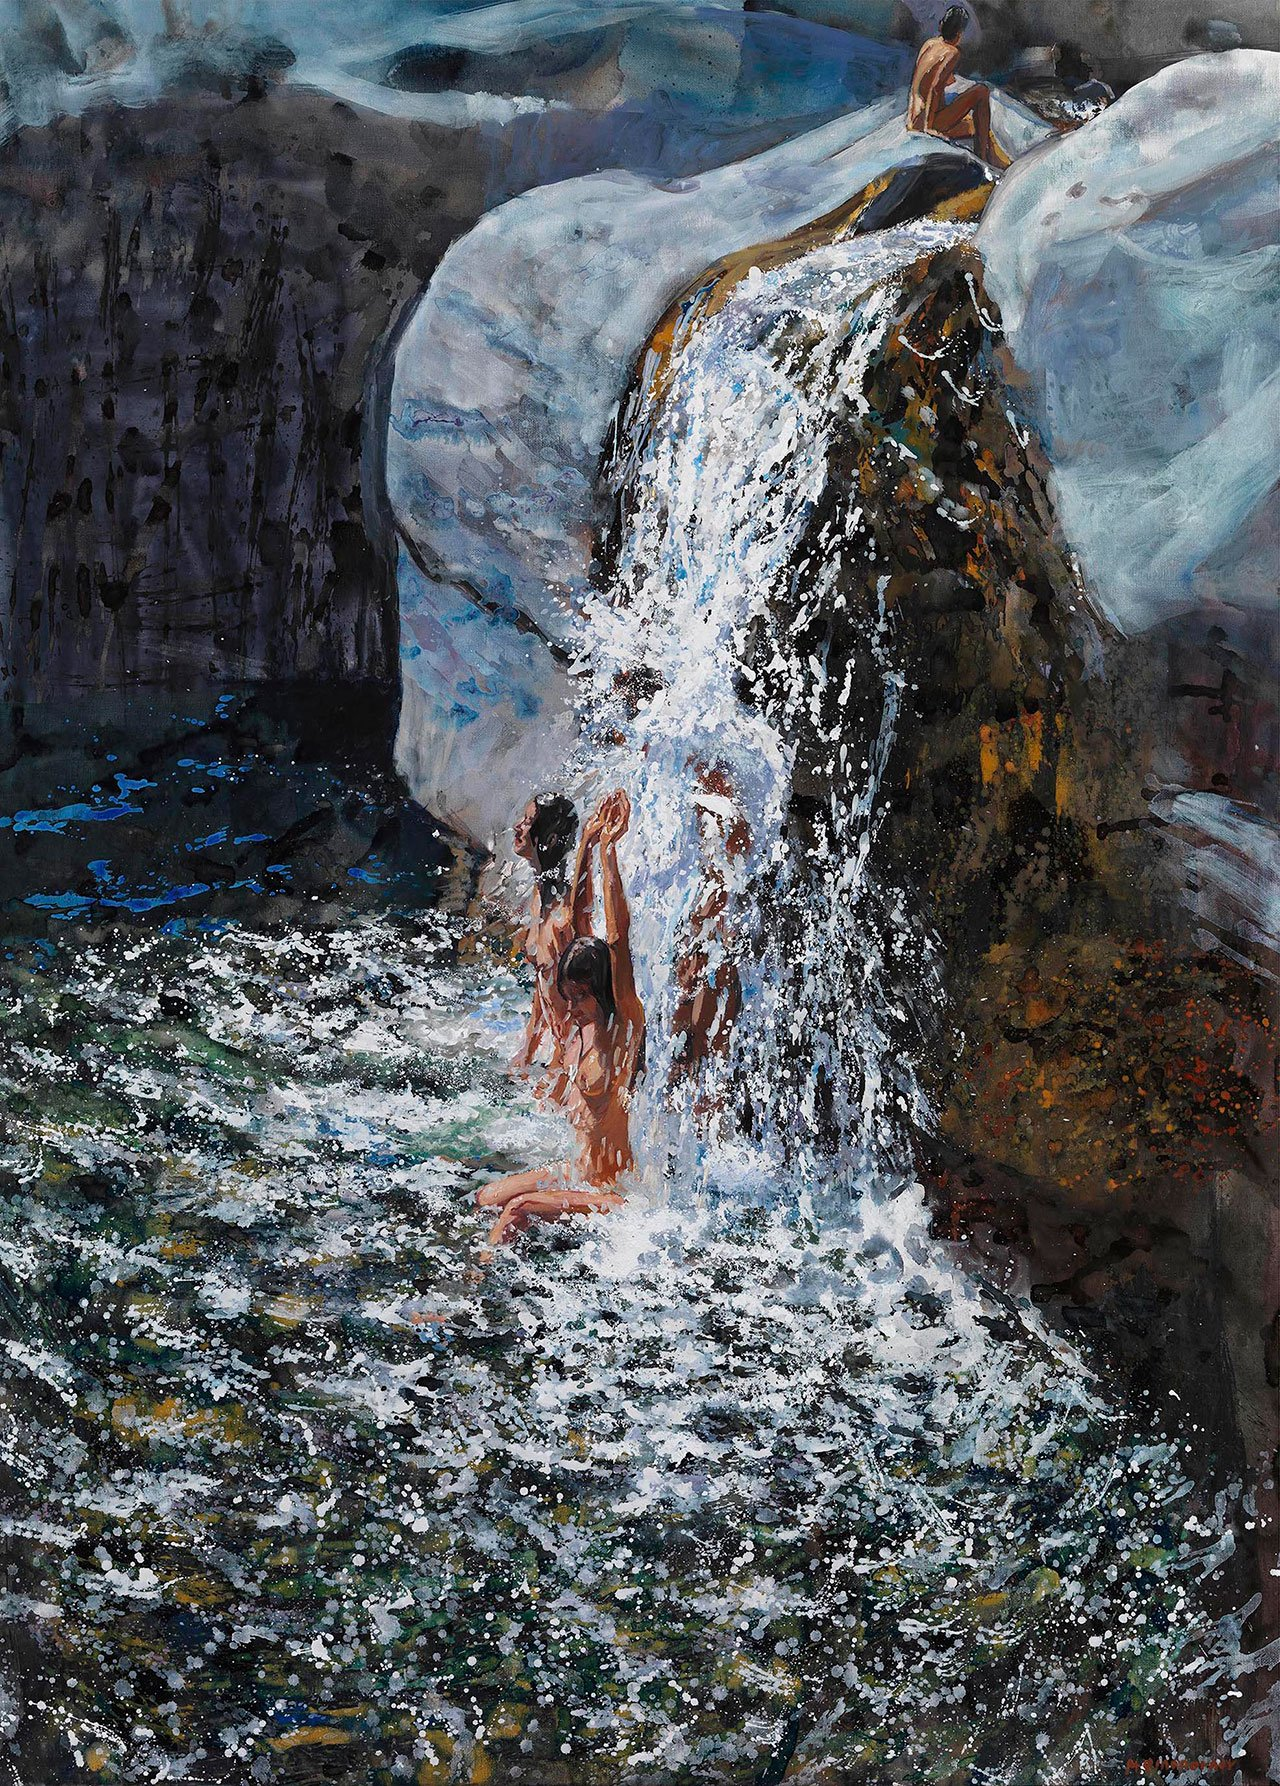 Maria Filopoulou, Elation, 2011. Oil on canvas, 128 x 92cm.